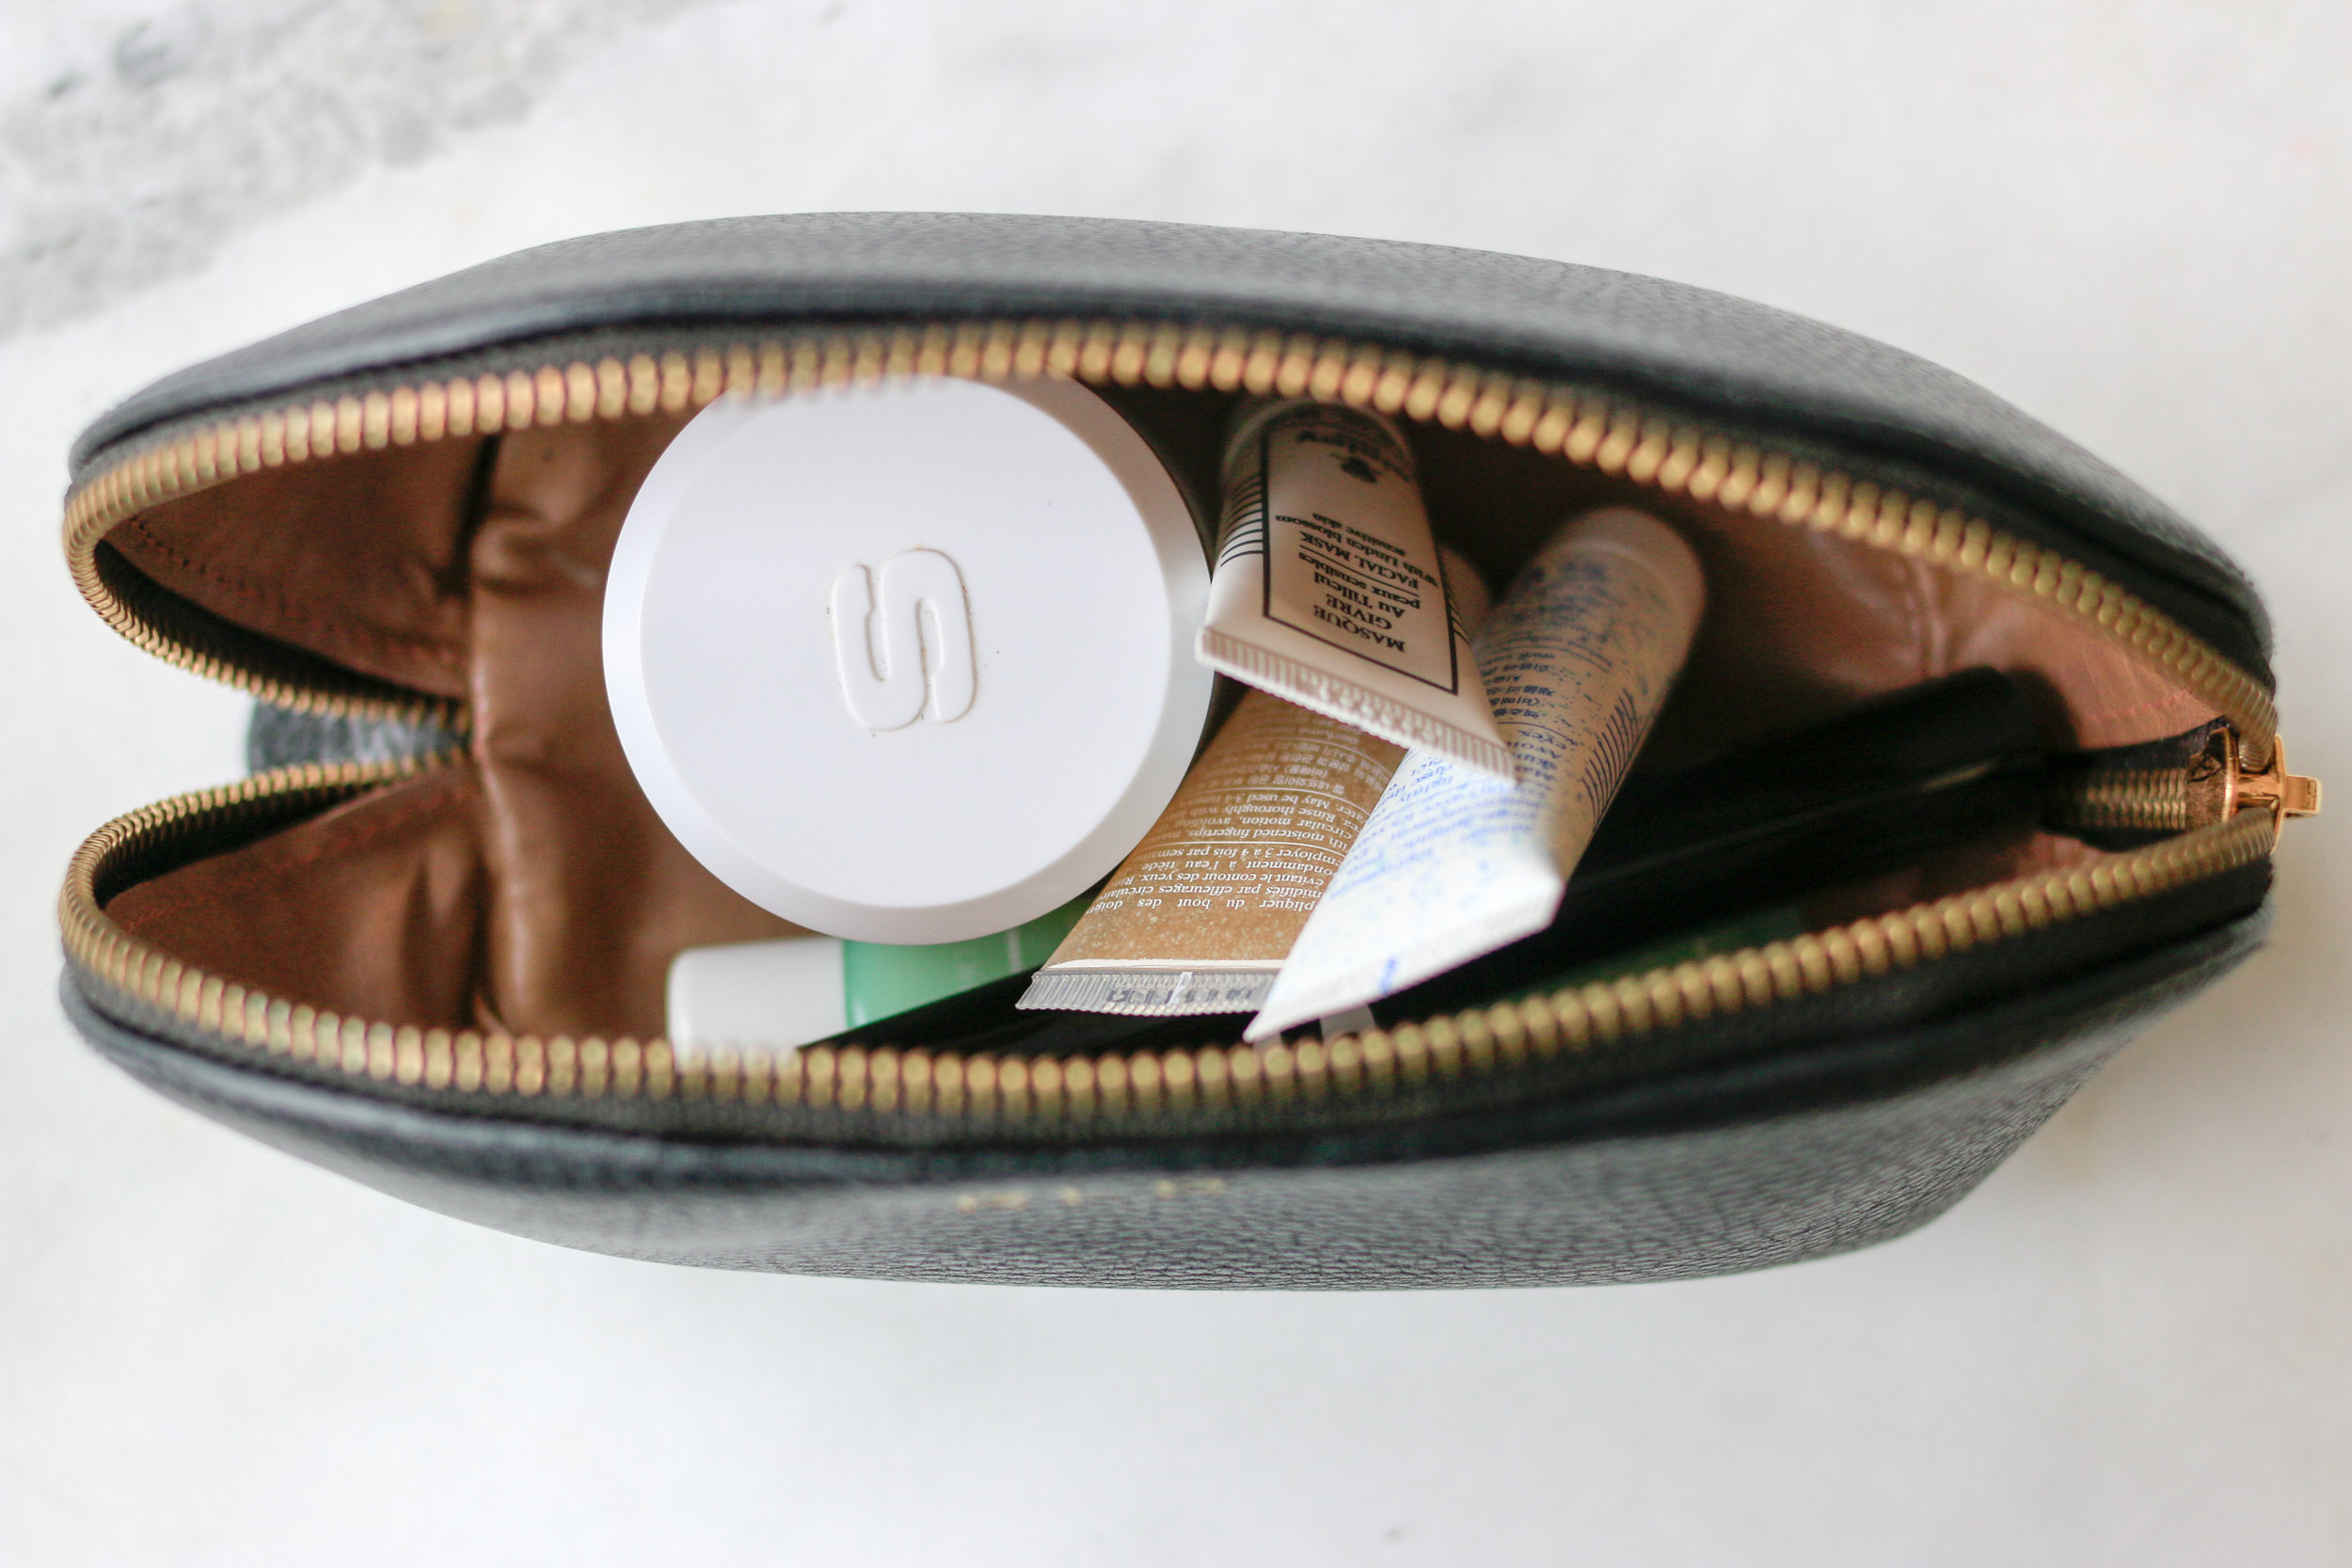 Cuyana Leather Travel Bag